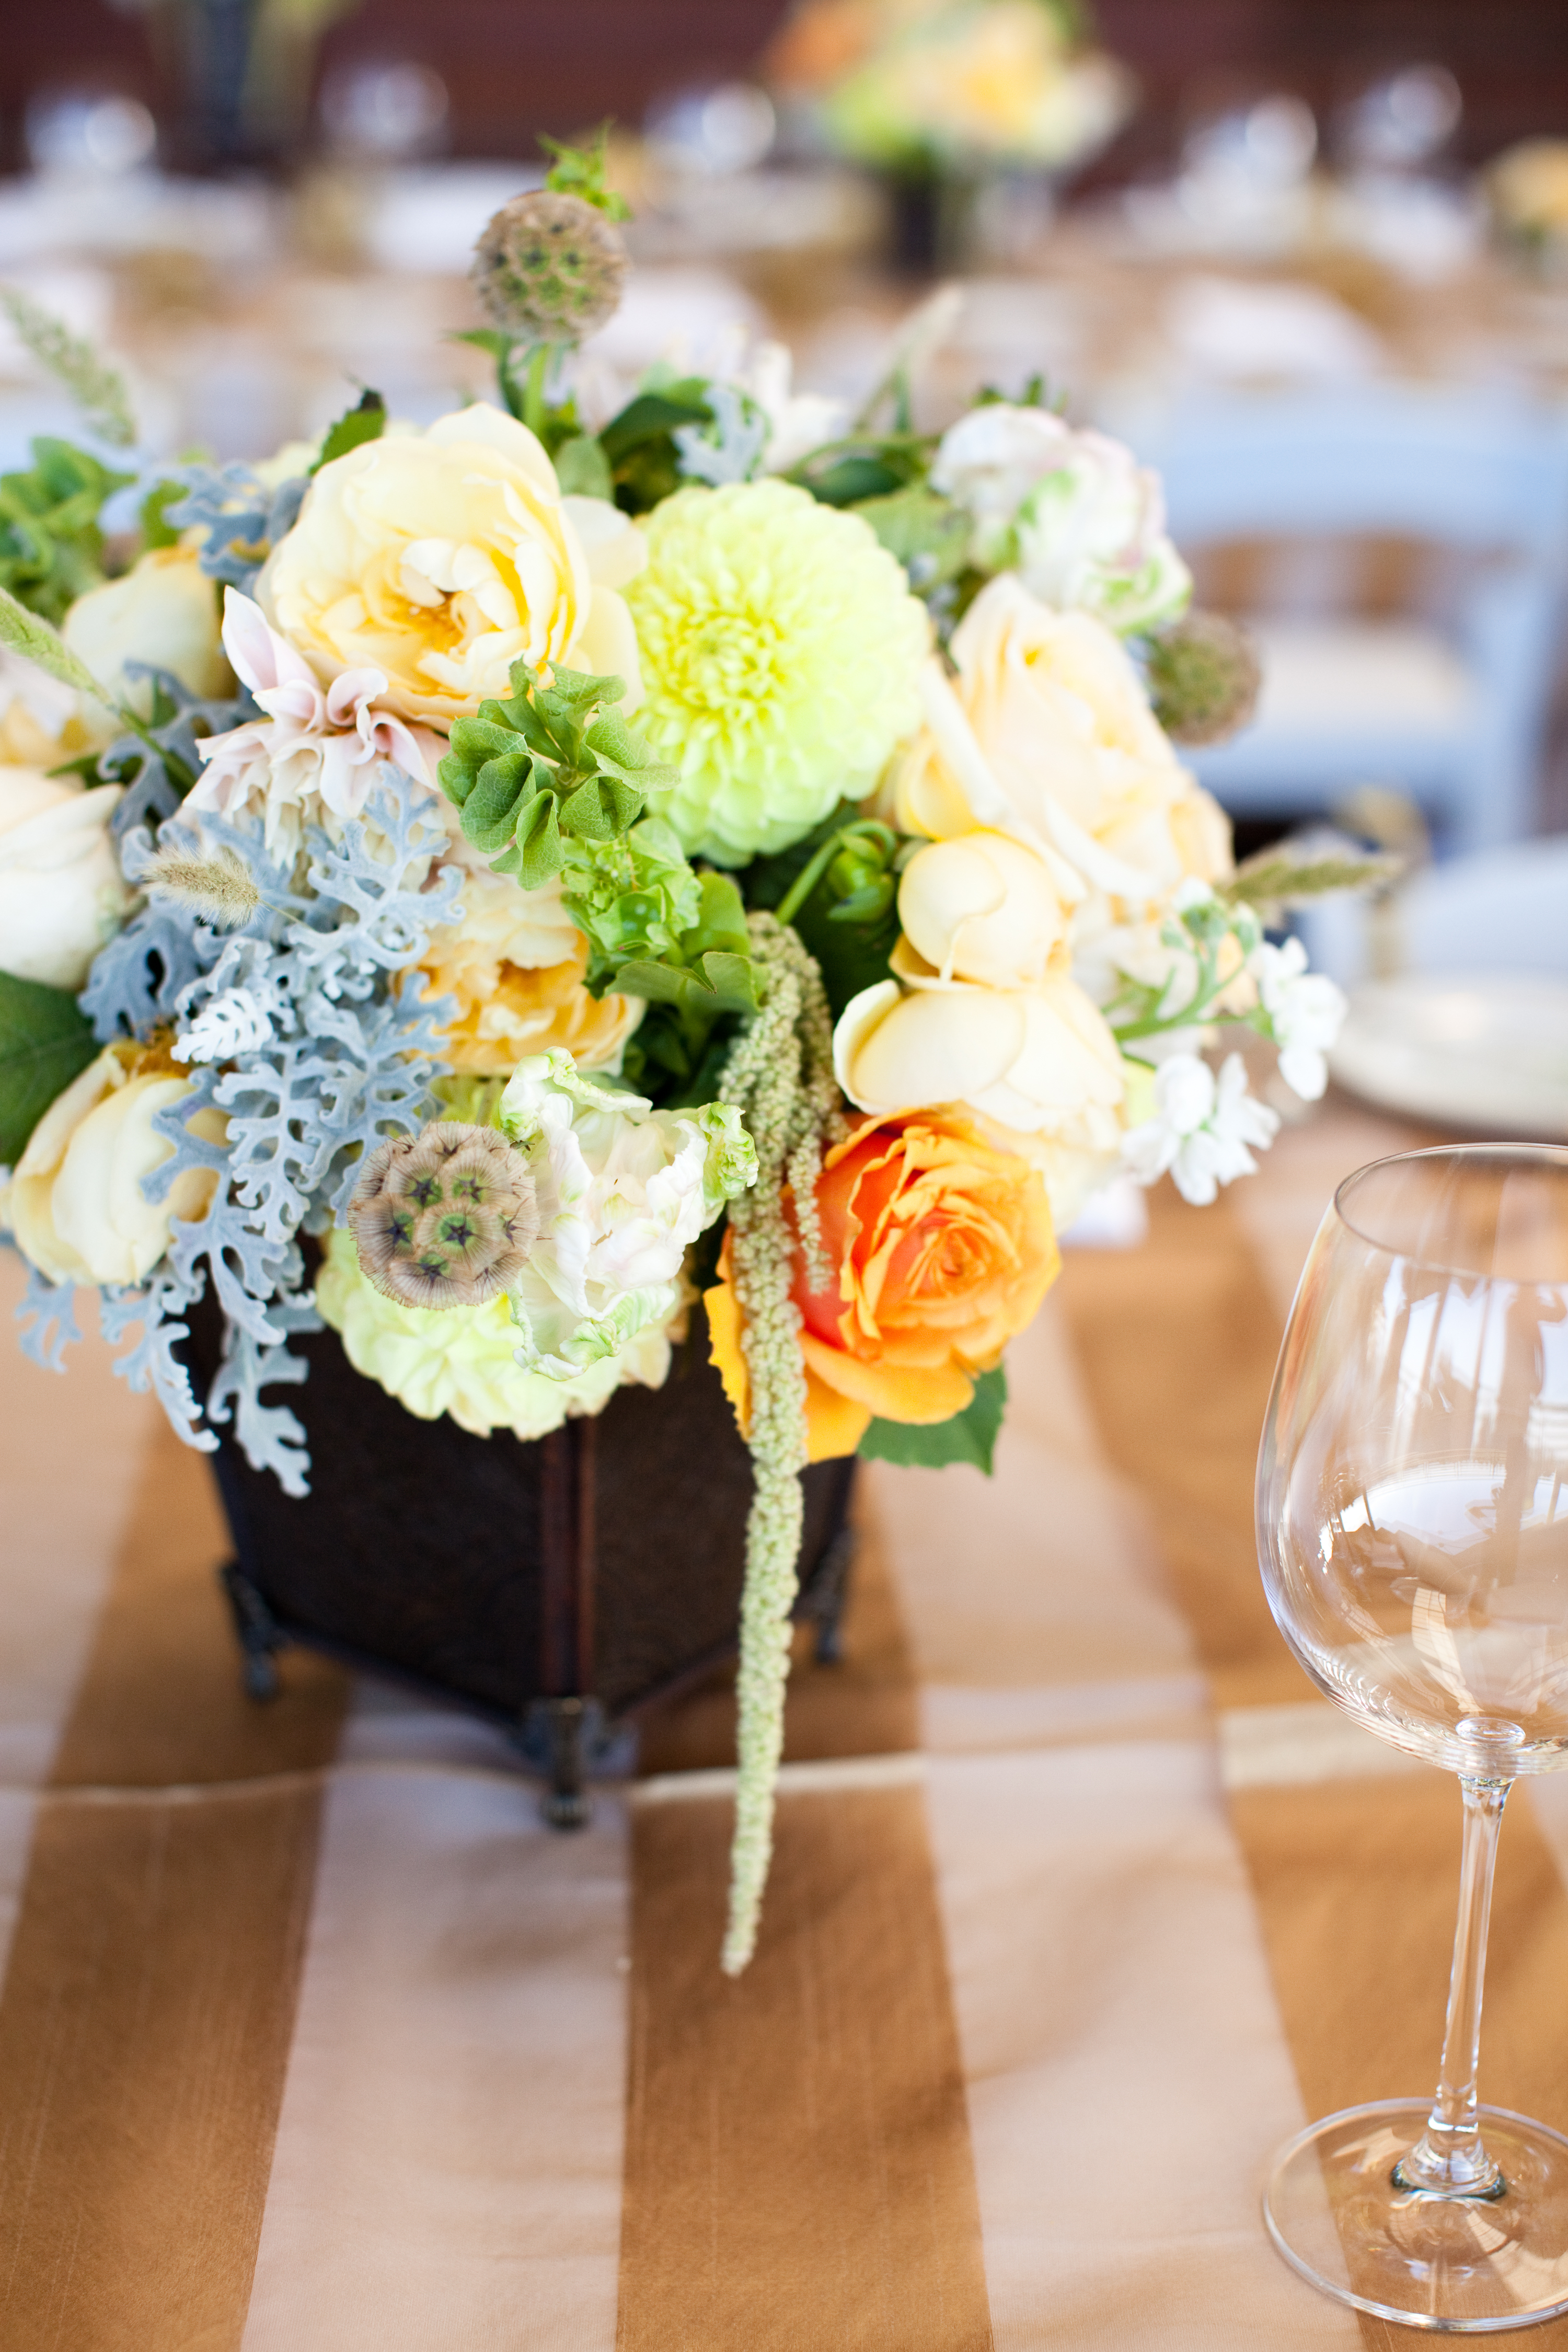 Flowers & Decor, white, orange, blue, Centerpieces, Flowers, Centerpiece, Table, Peach, Ashley mark